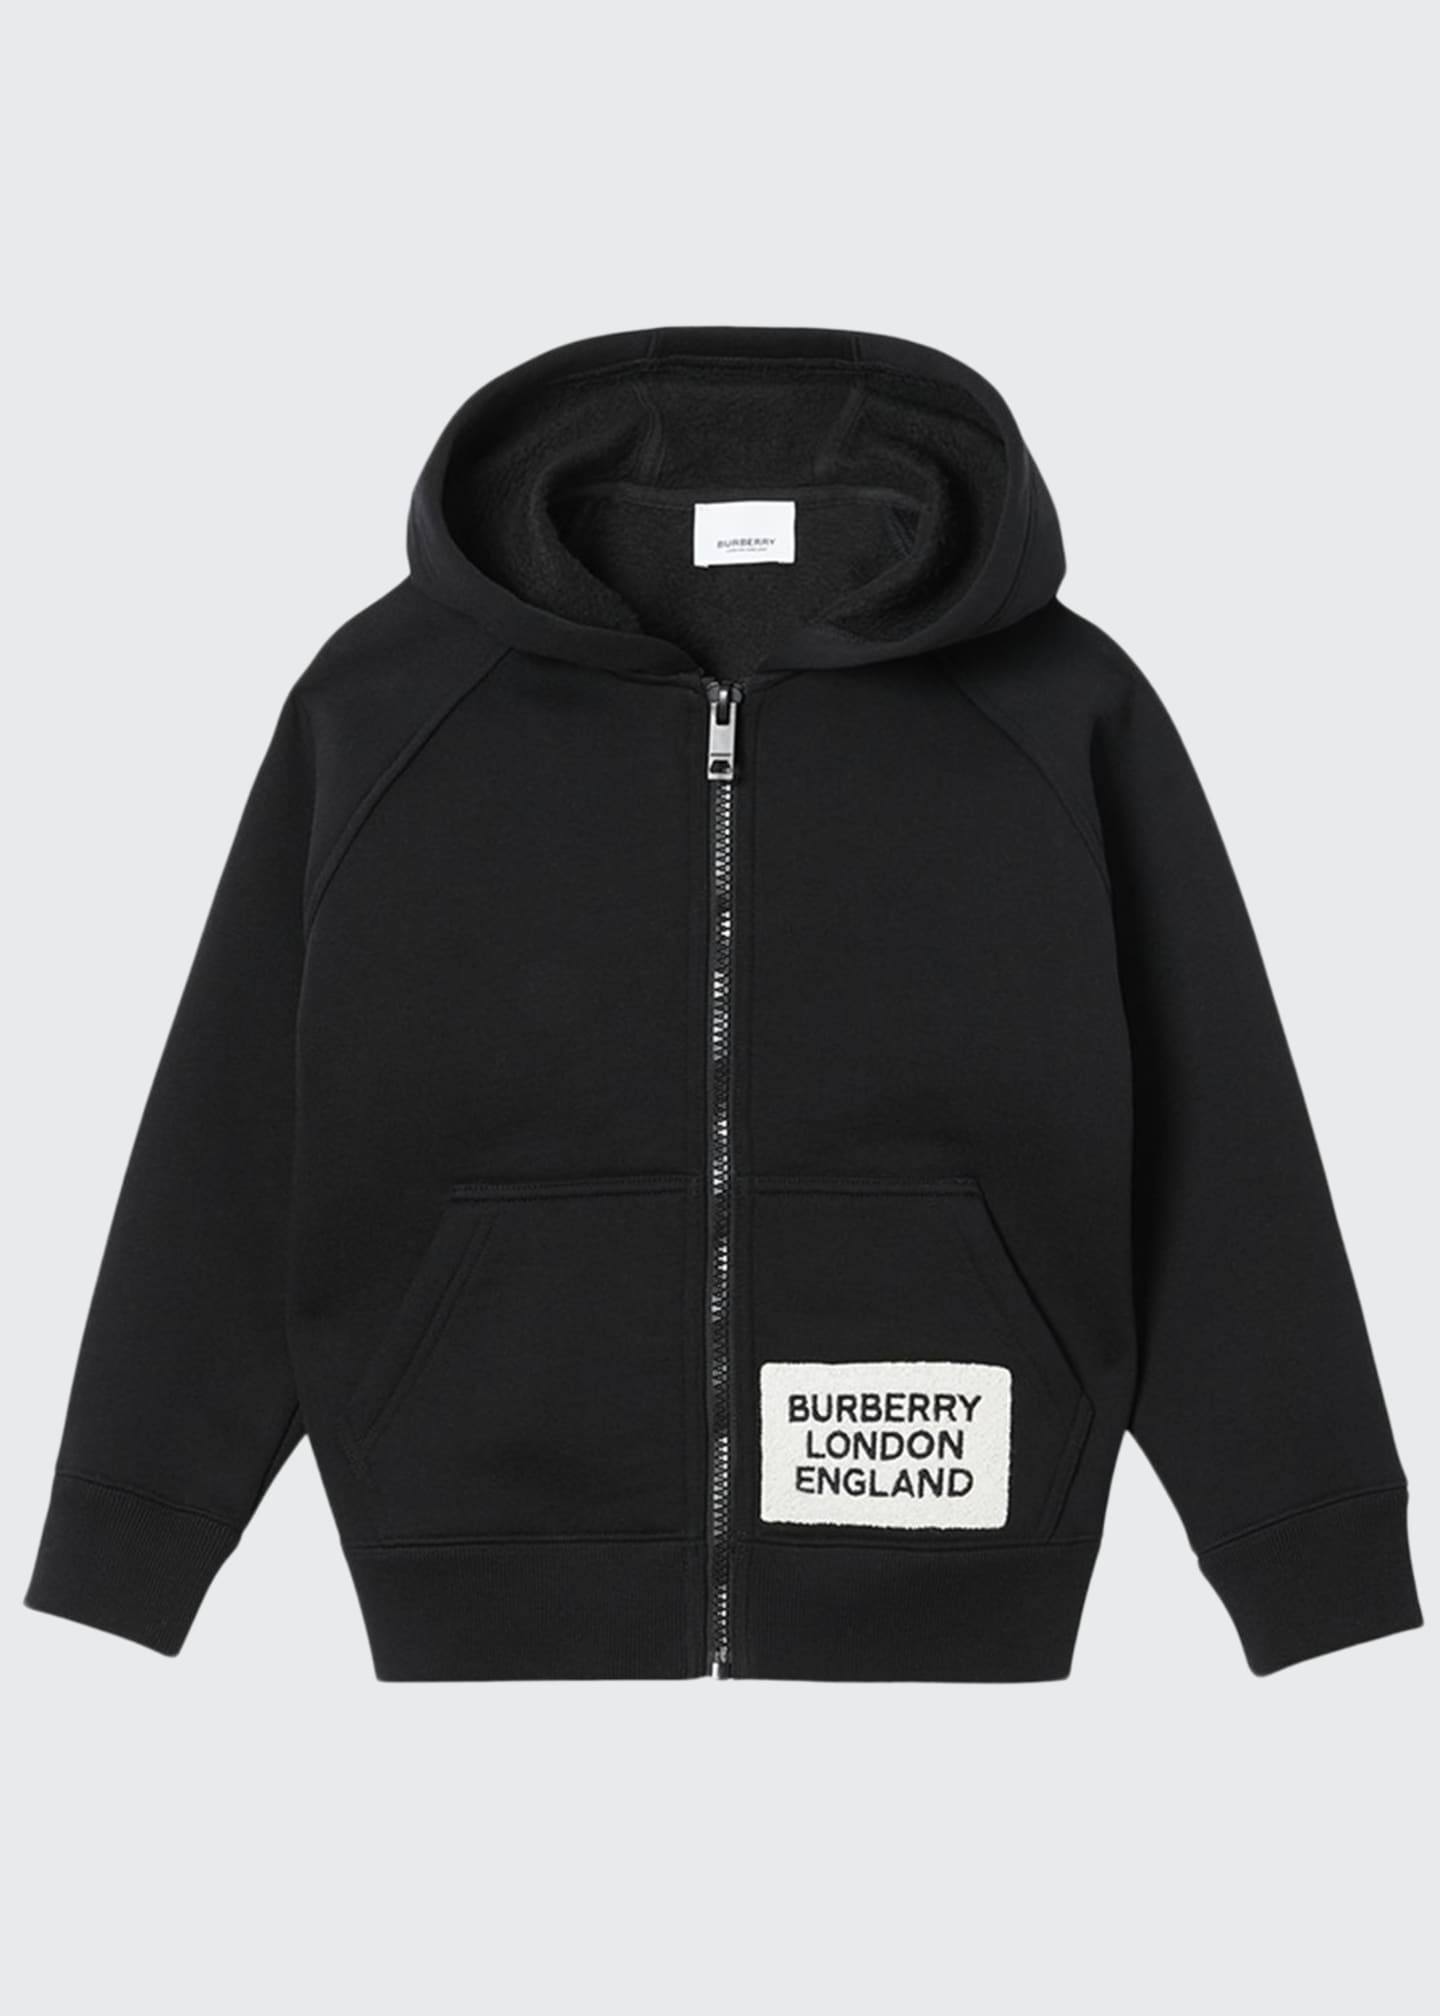 Burberry Boy's Zip-Up Hooded Jacket w/ Logo Patch,